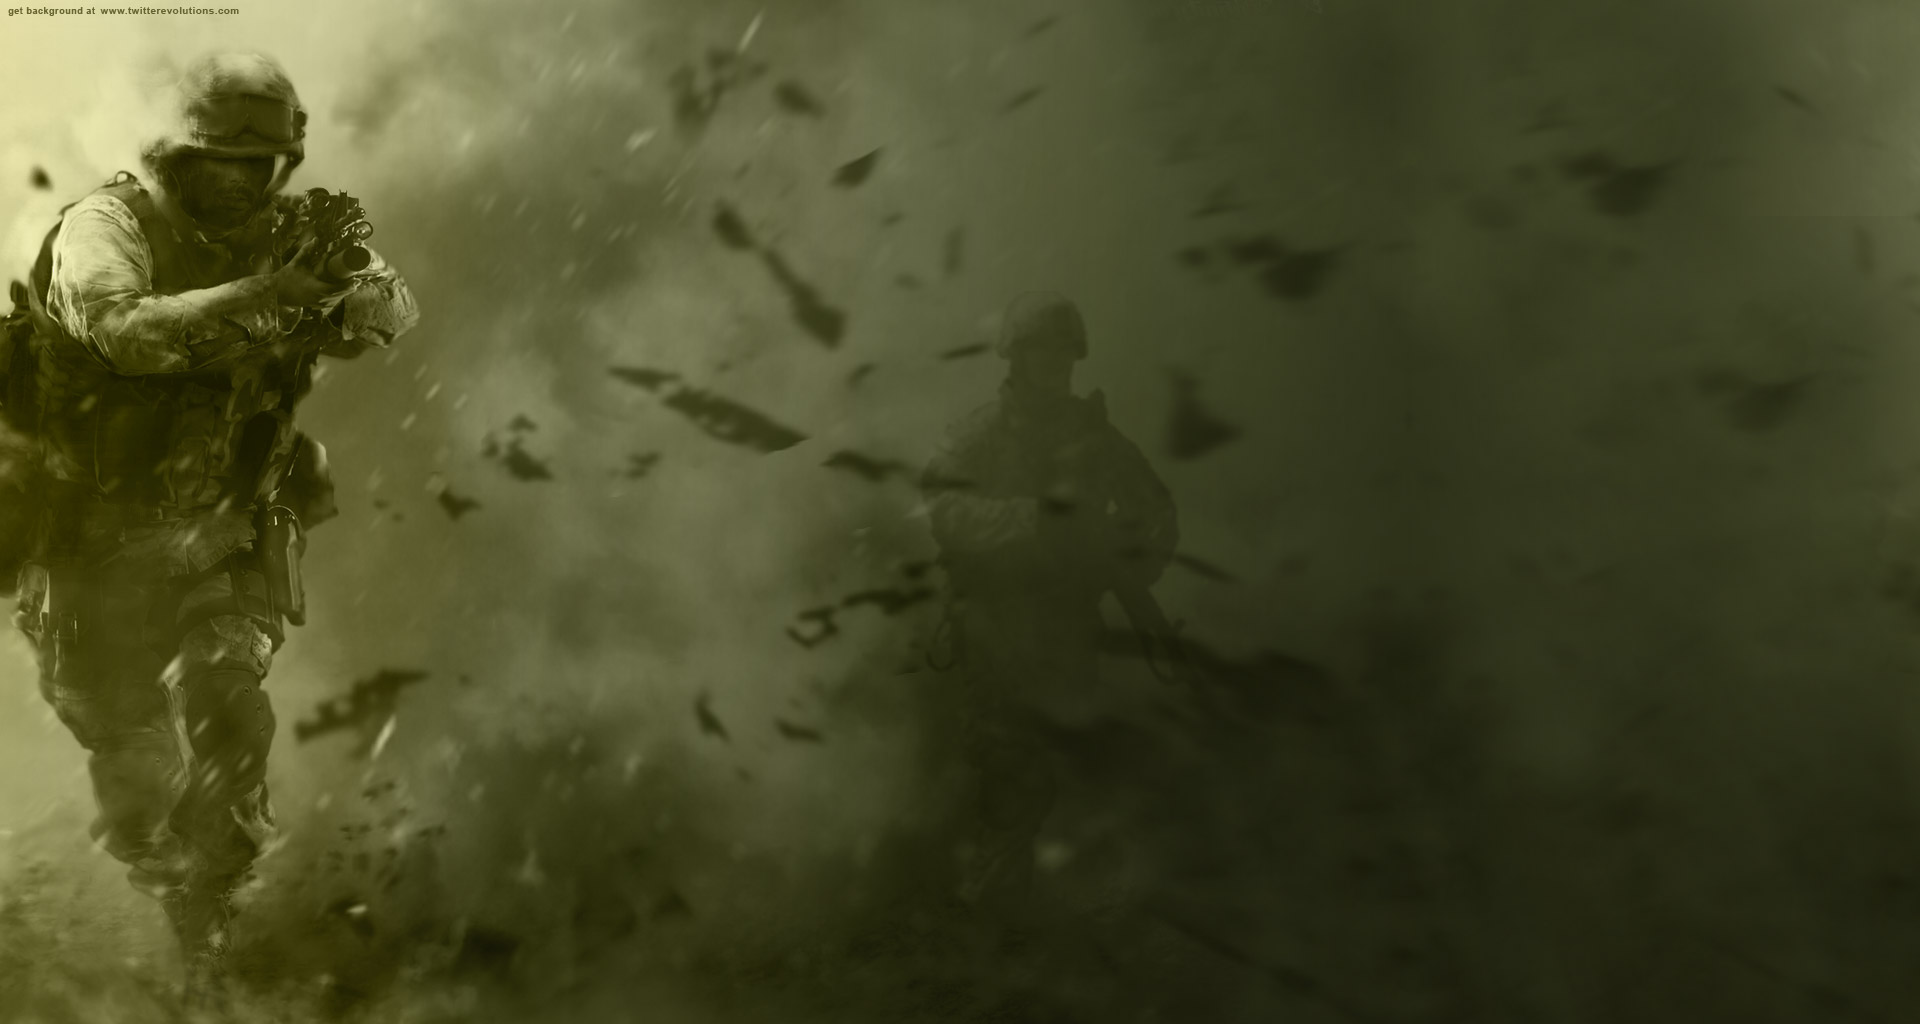 call-of-duty-twitter-background